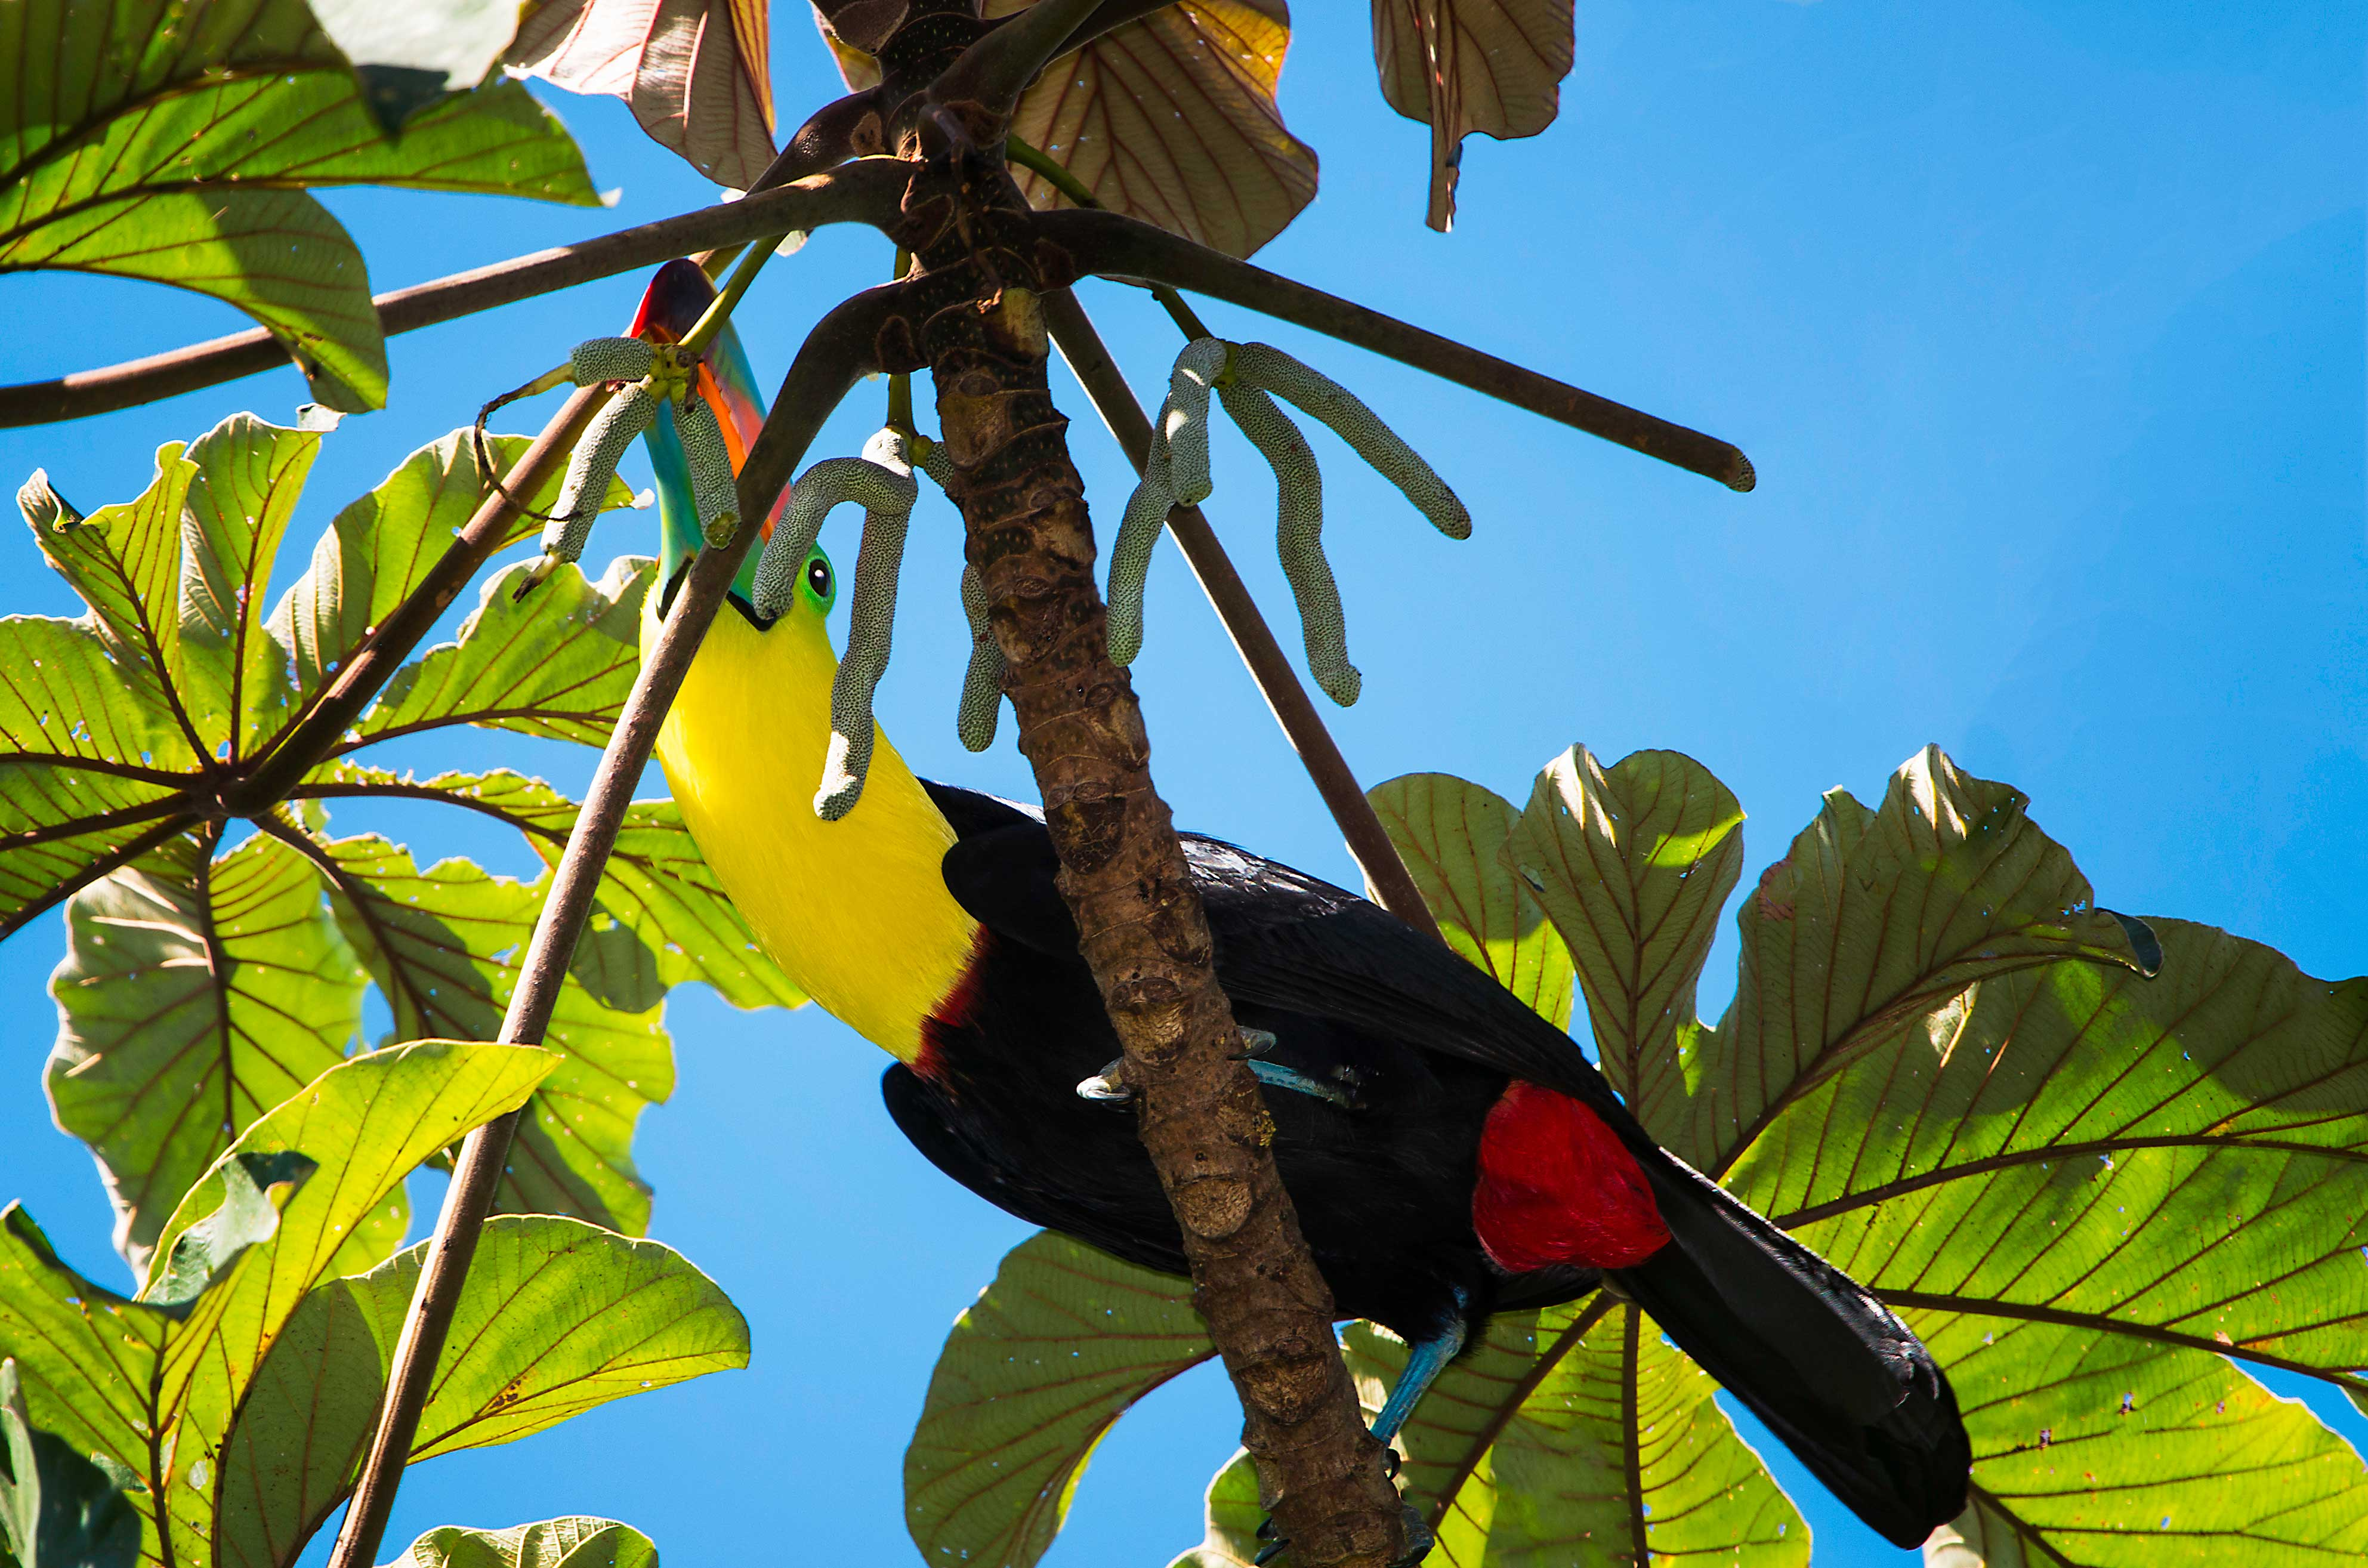 Keel billed toucan bird wallpaper